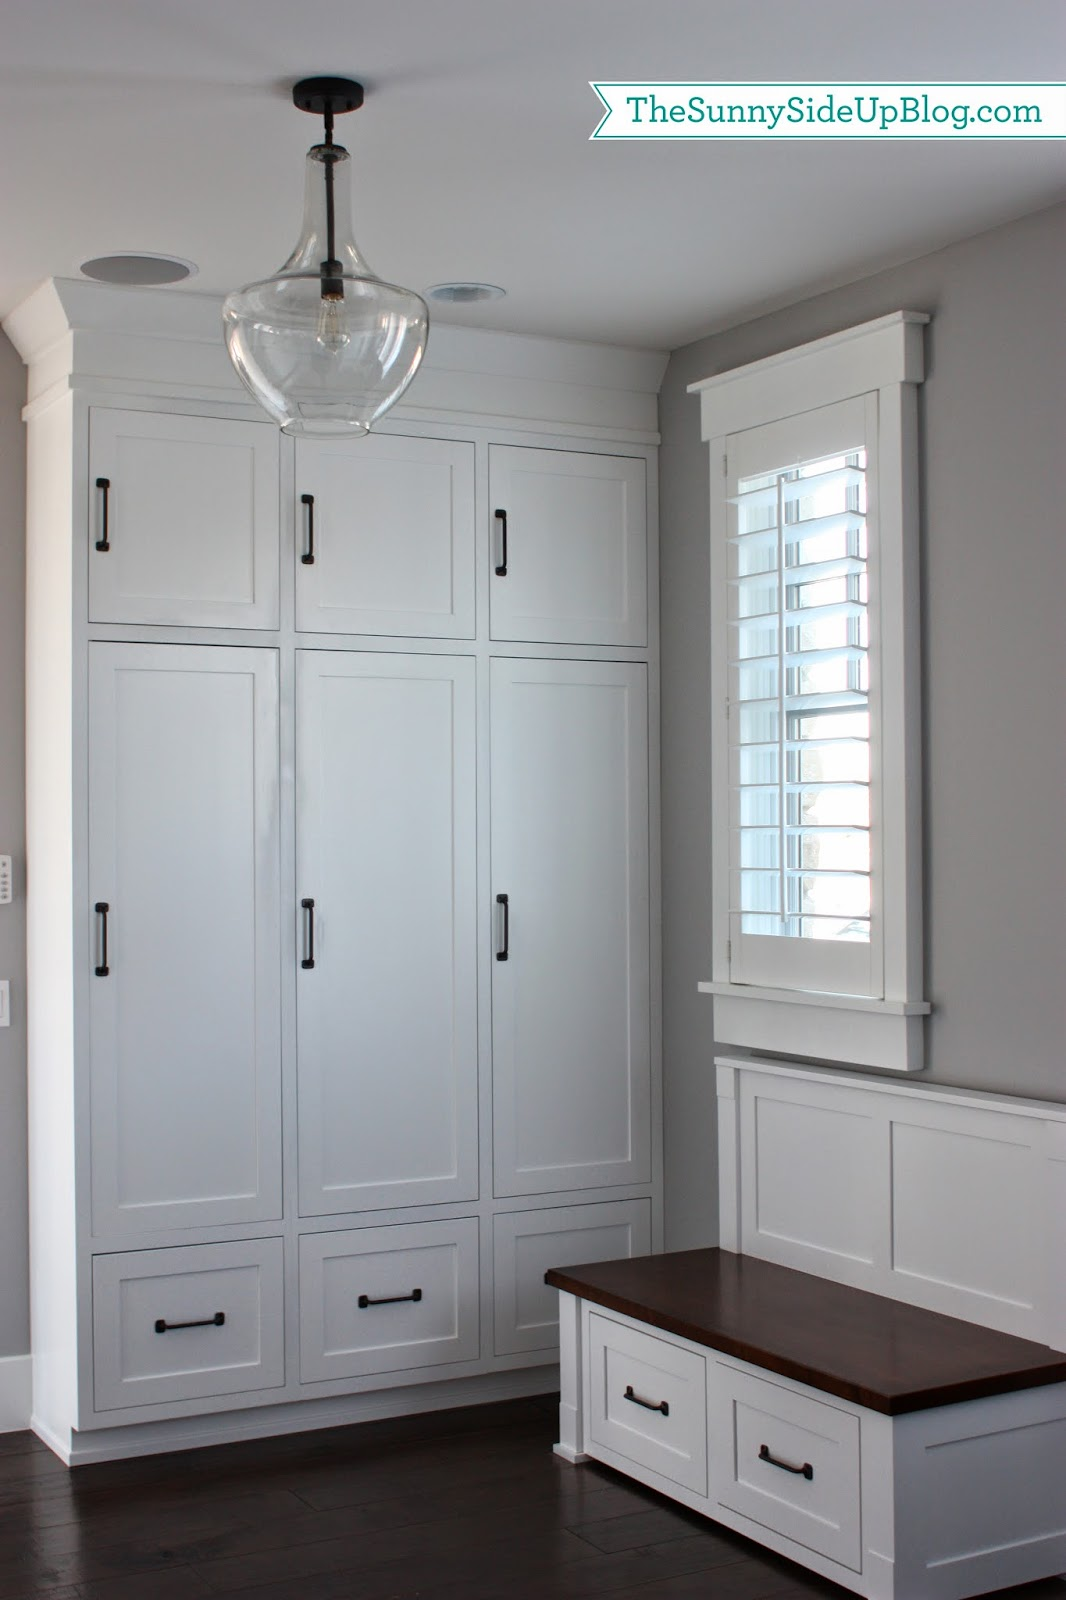 Mudroom Storage Cabinets : My new organized mudroom the sunny side up